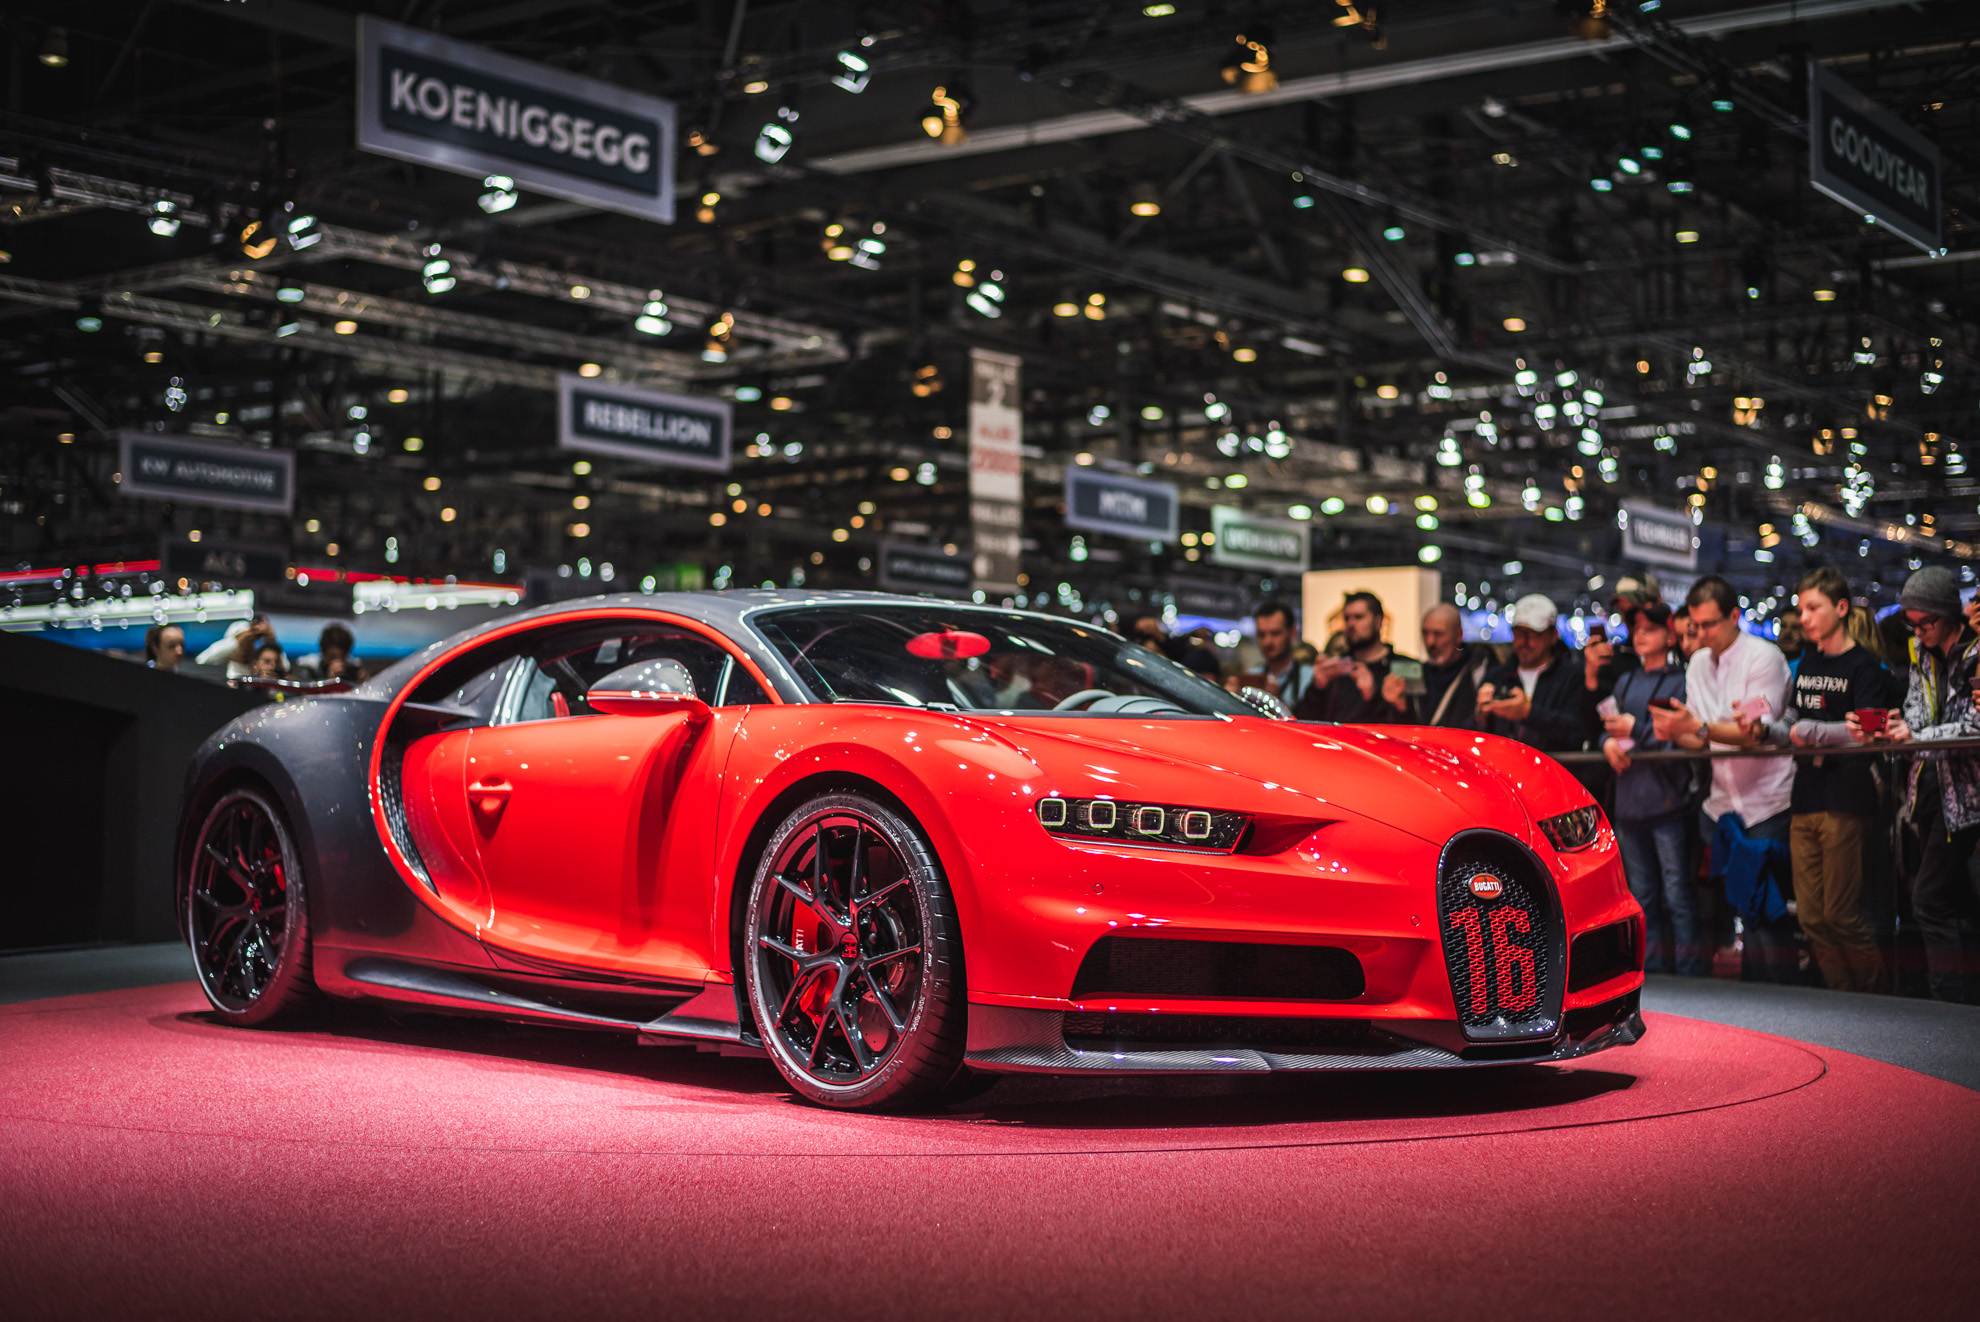 geneva-international-motor-show-igors-sinitsins-36